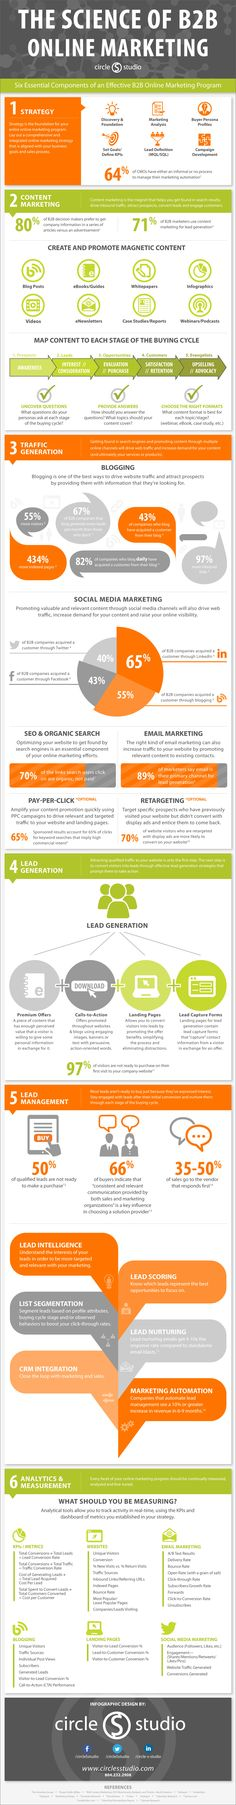 The Science of #B2B Online Marketing